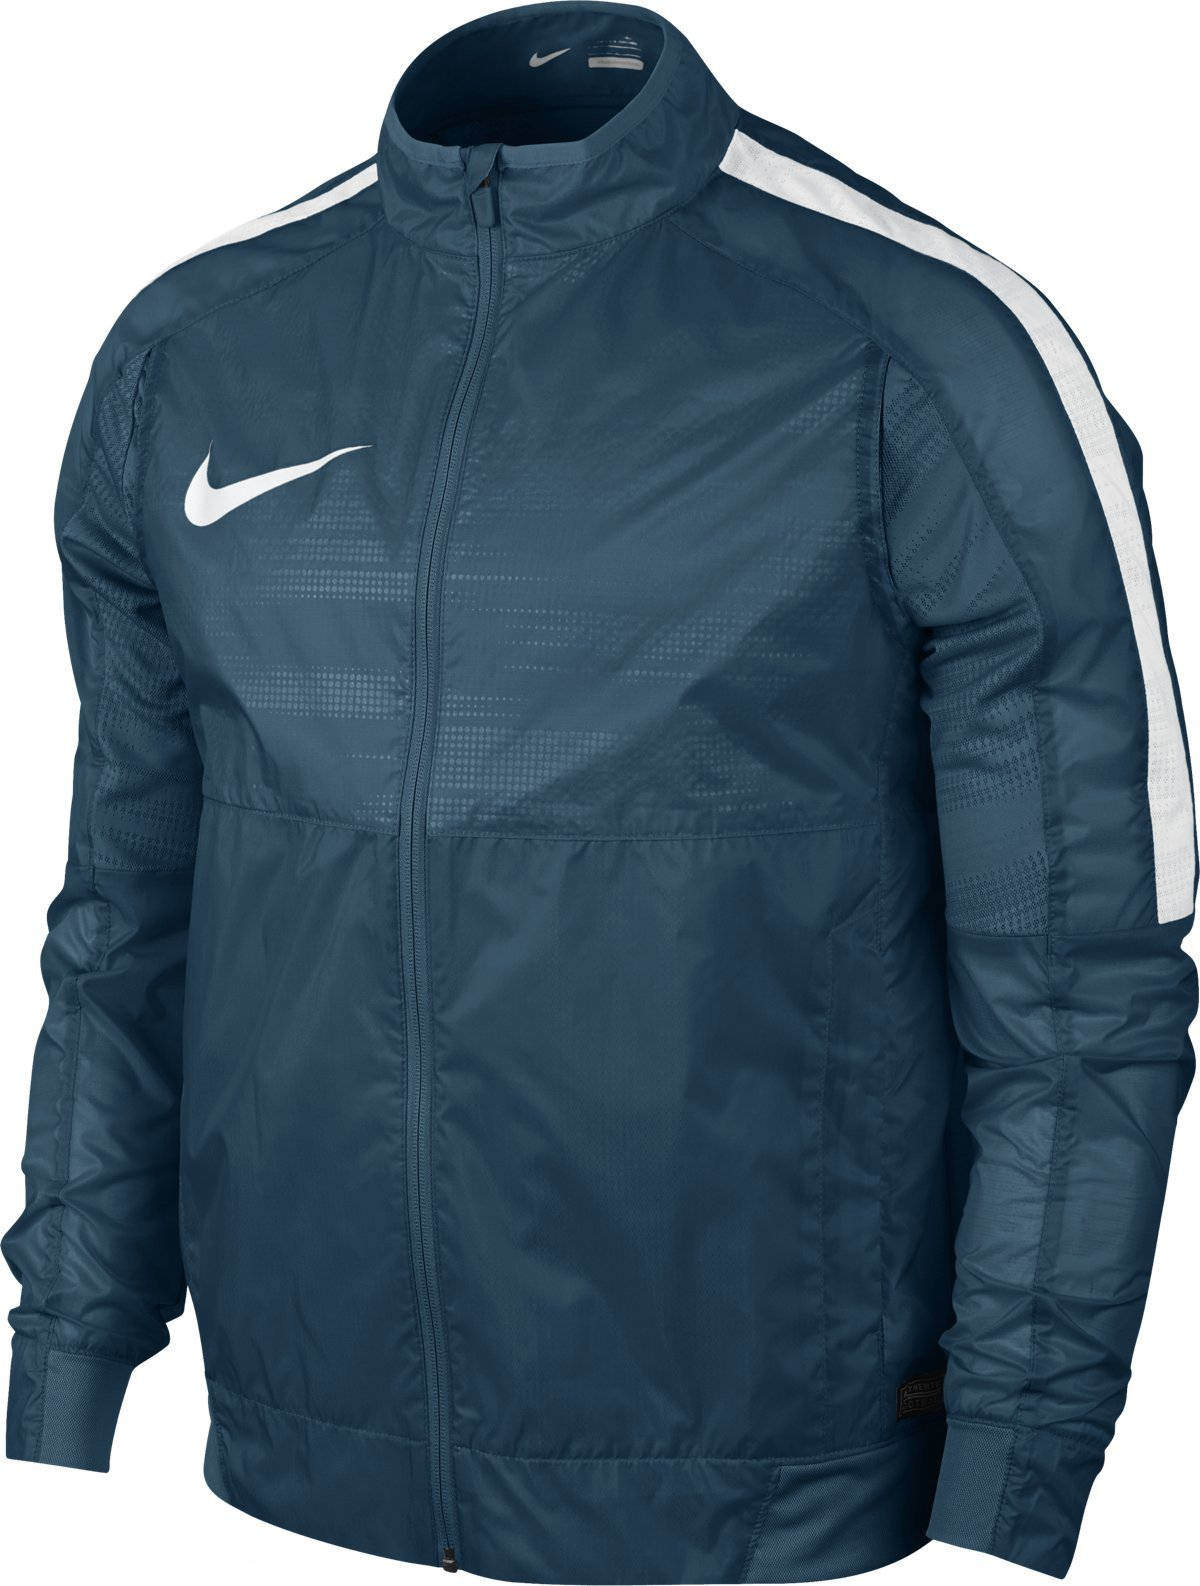 Graphic-Lightweight-Woven-Nike-Giacca-Allenamento-Training-Jacket-TASCHE-a-ZIP